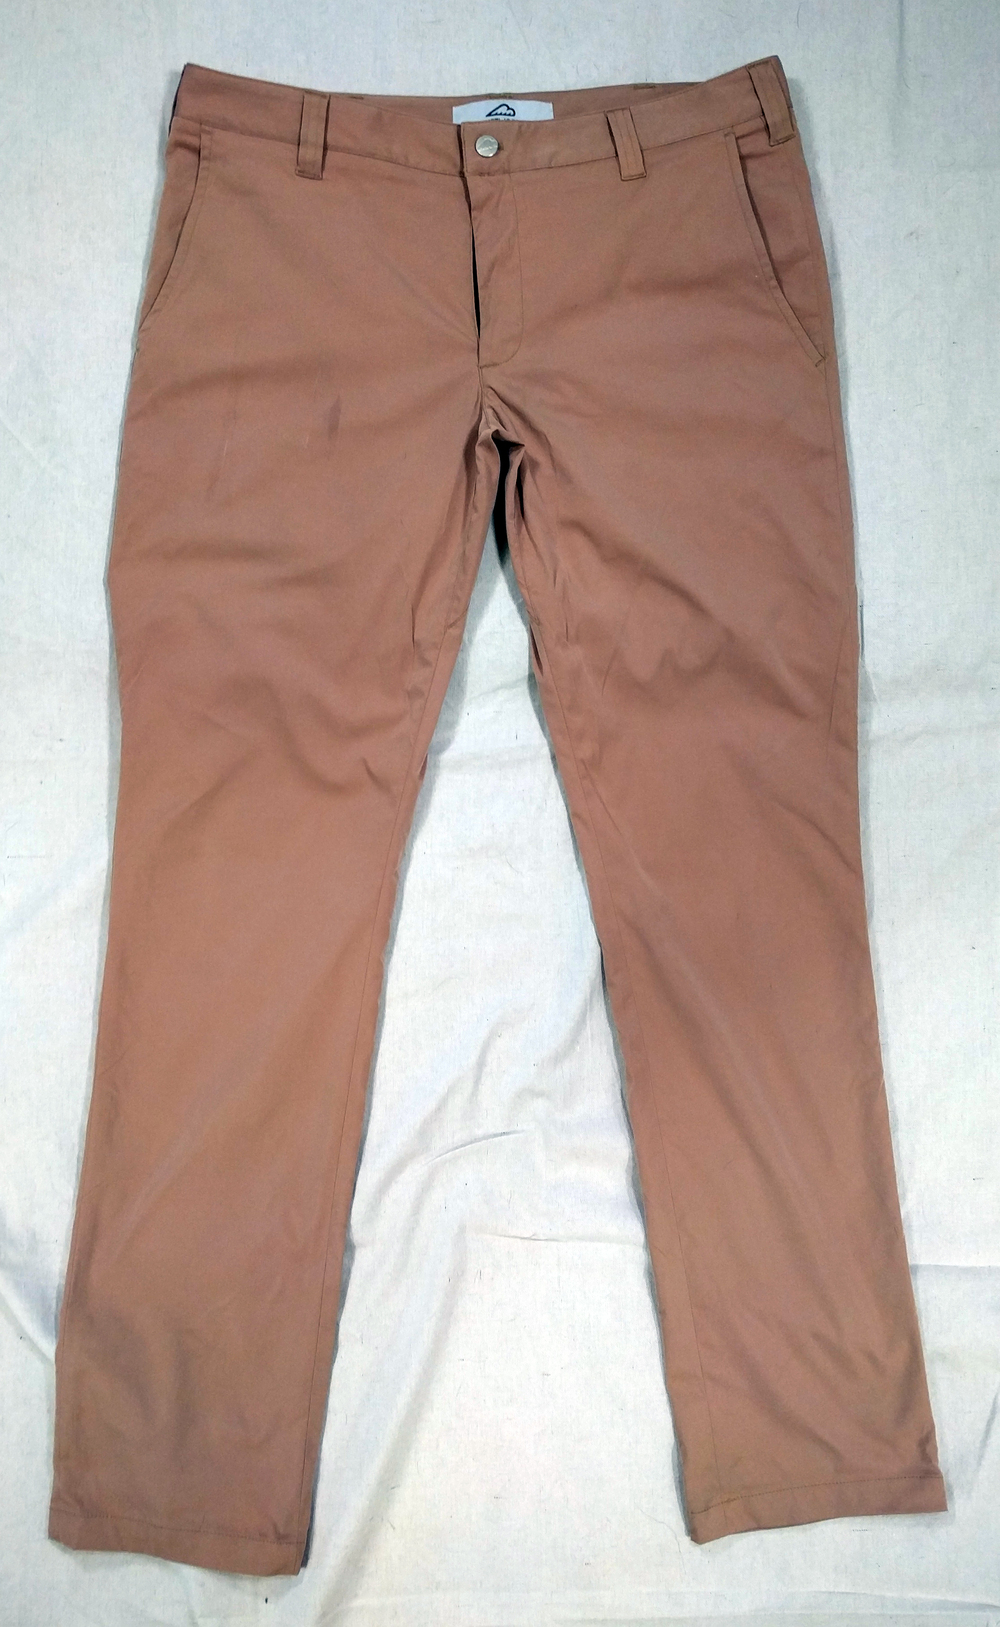 nate Bluff works pants.jpg